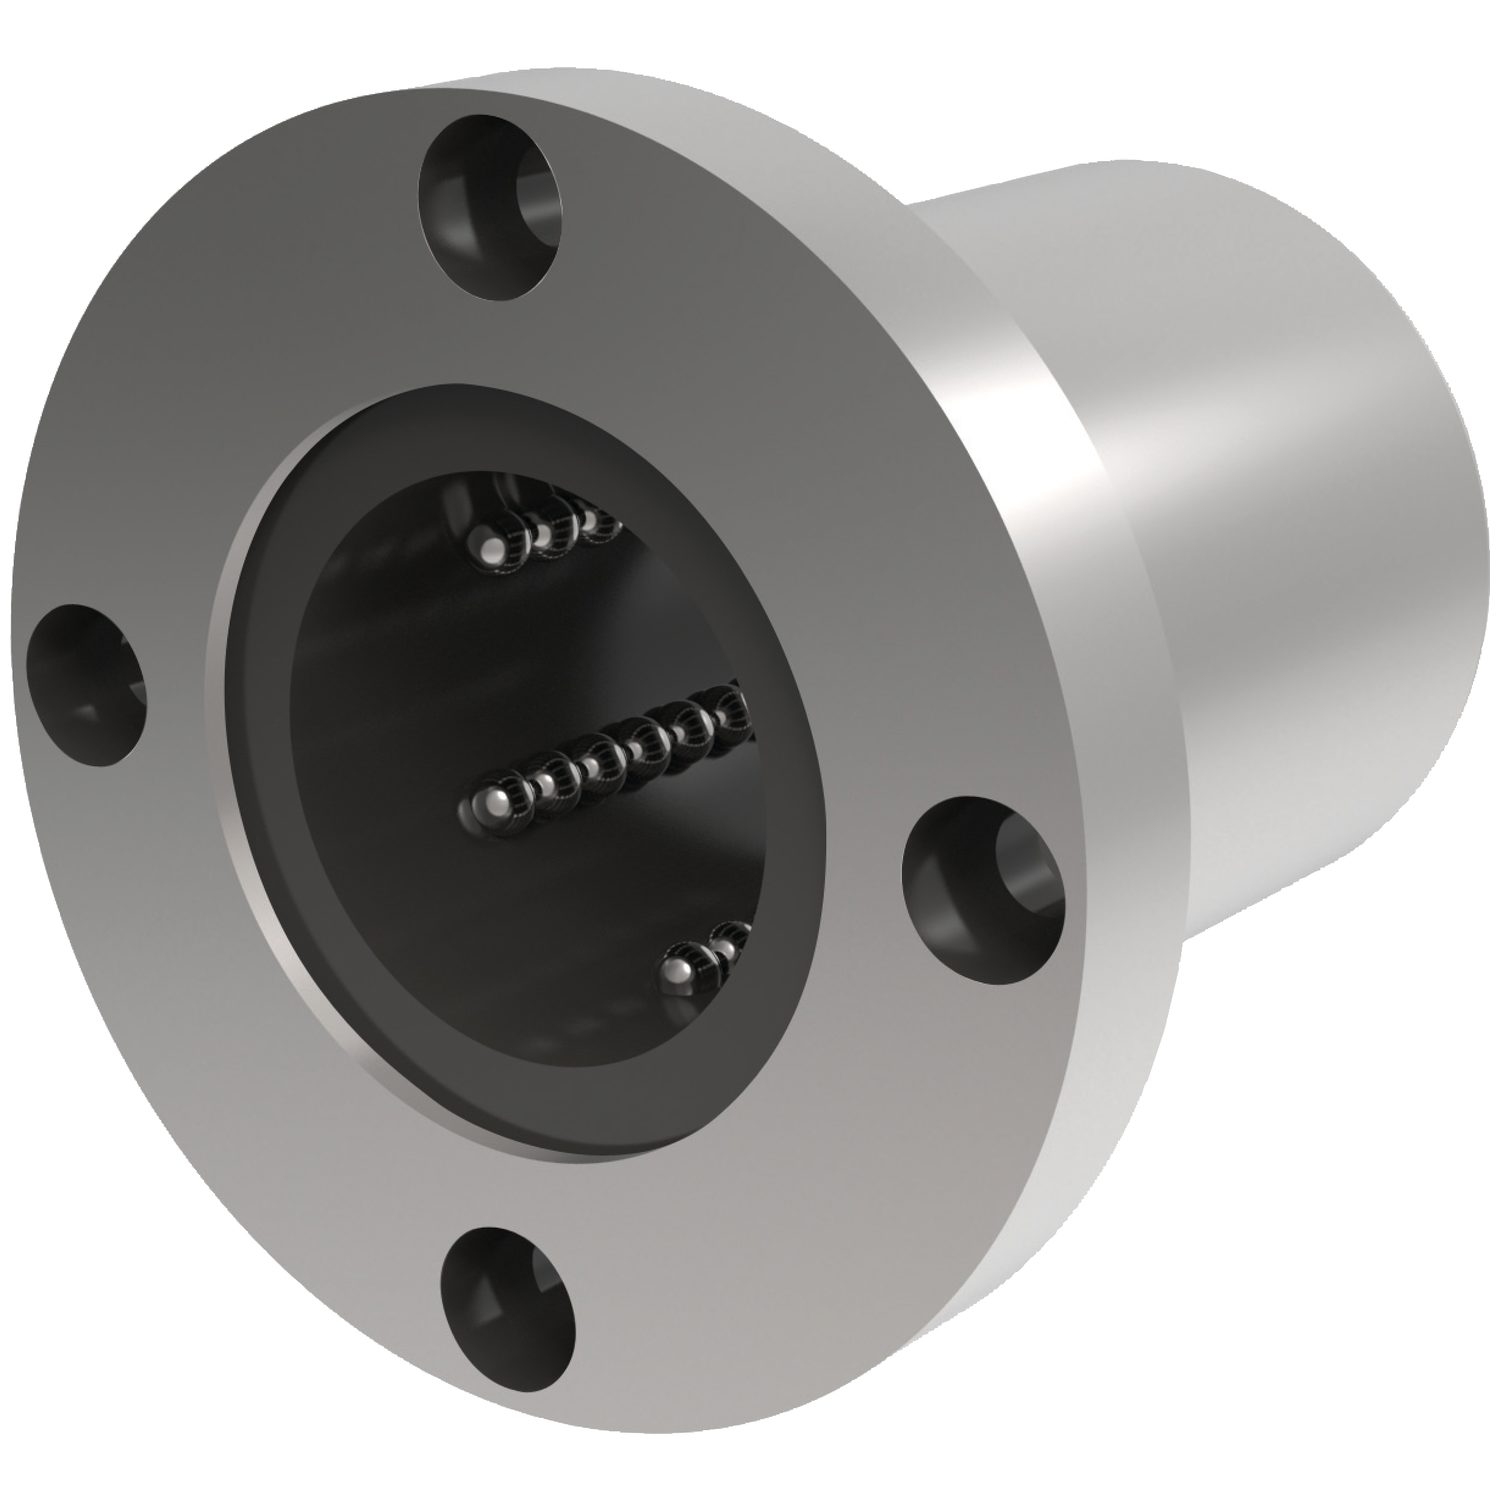 Flanged Linear Ball Bushings Circular flanged linear ball bushings - 6mm to 60mm.